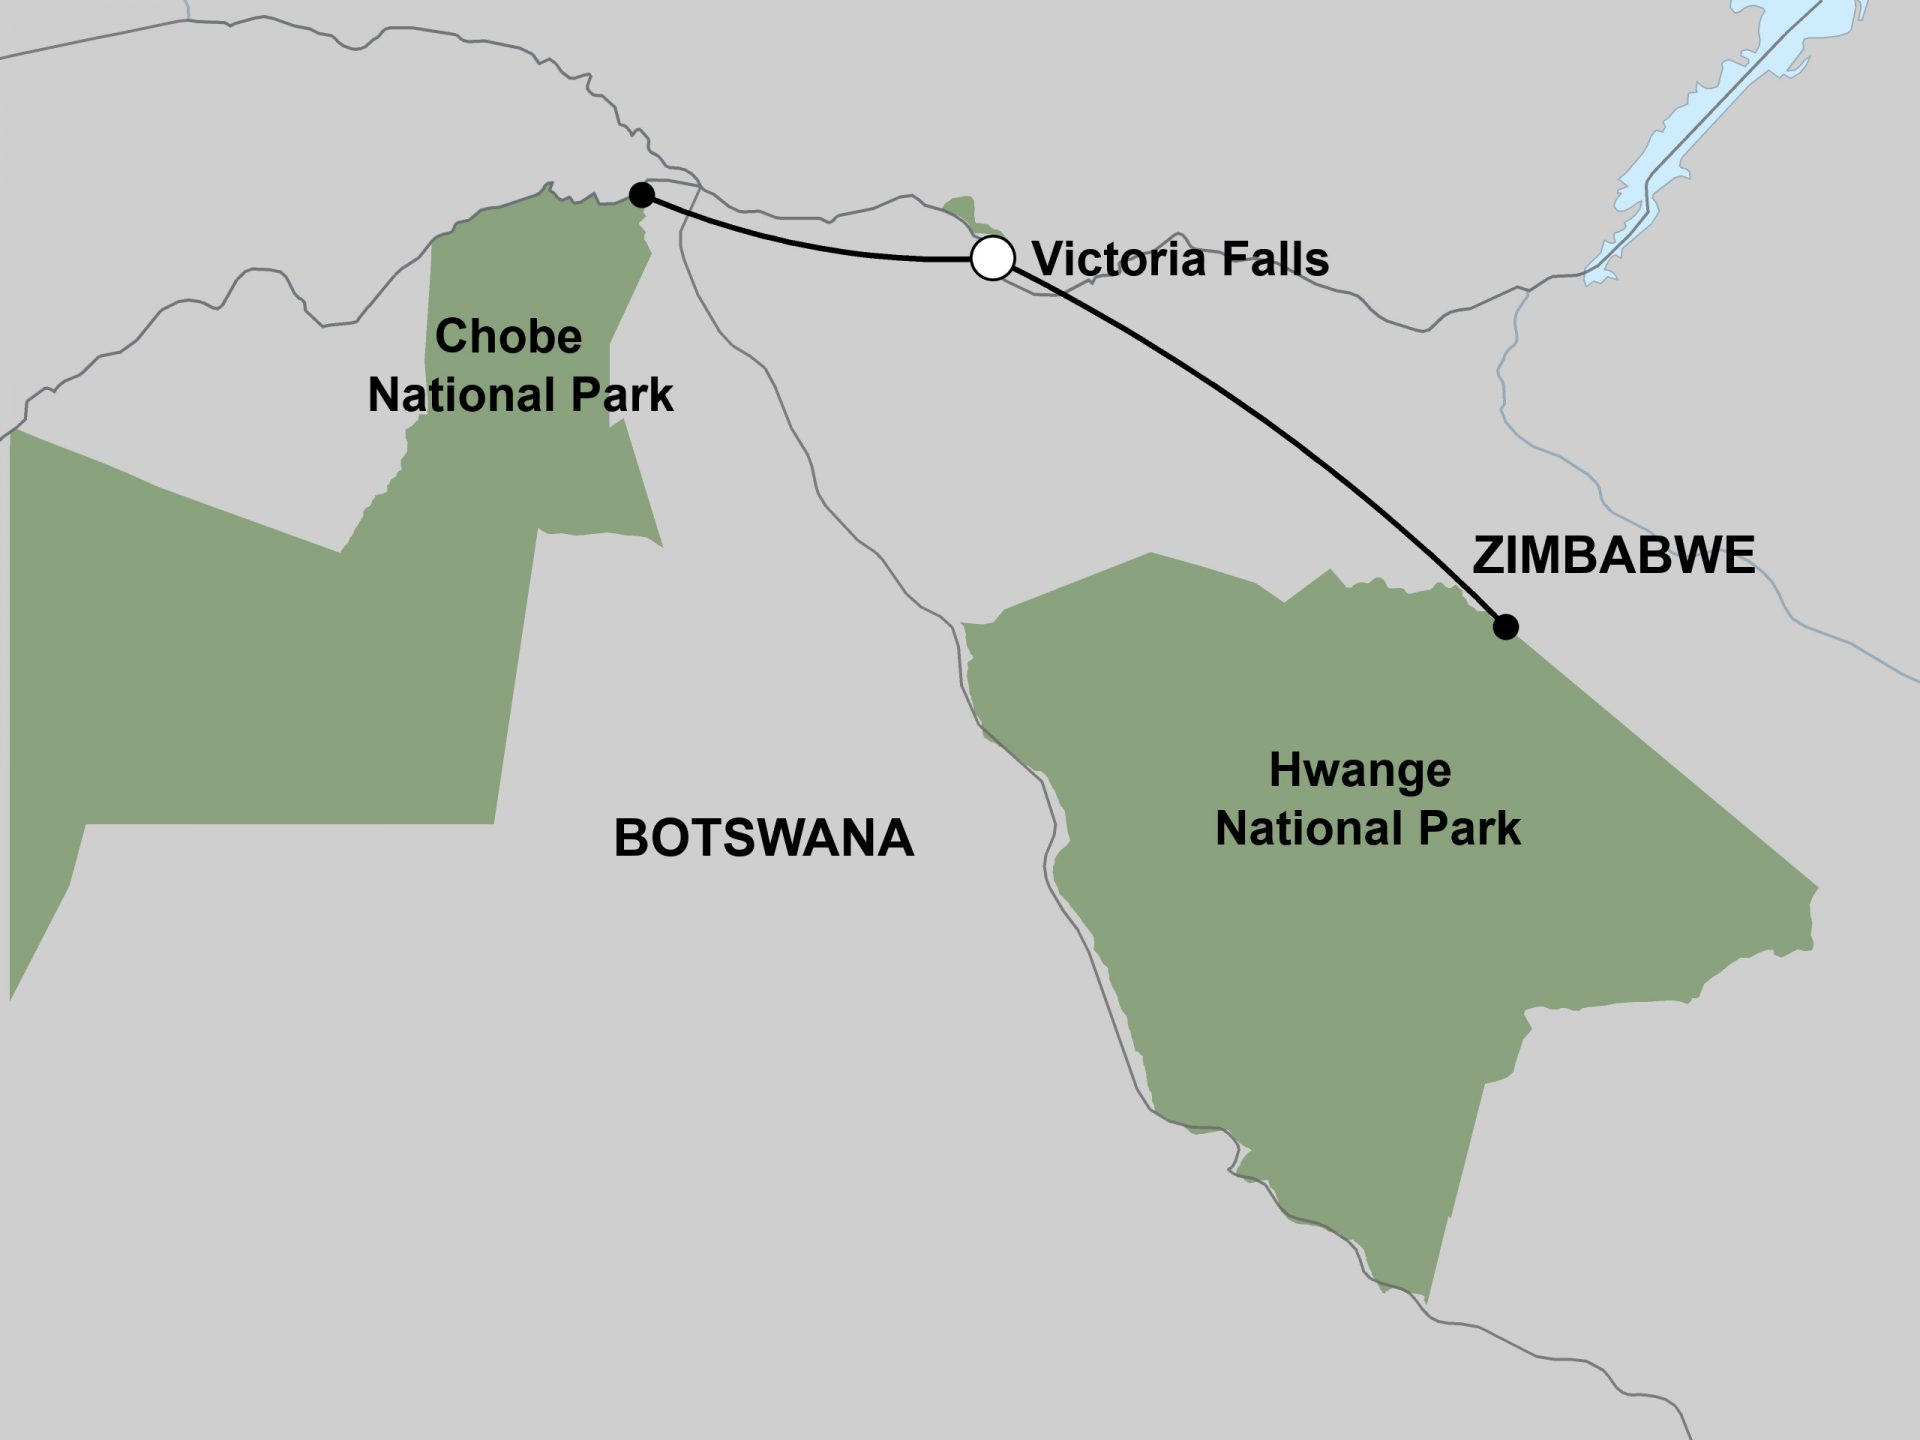 Chobe, Victoria Falls and Hwange Safari